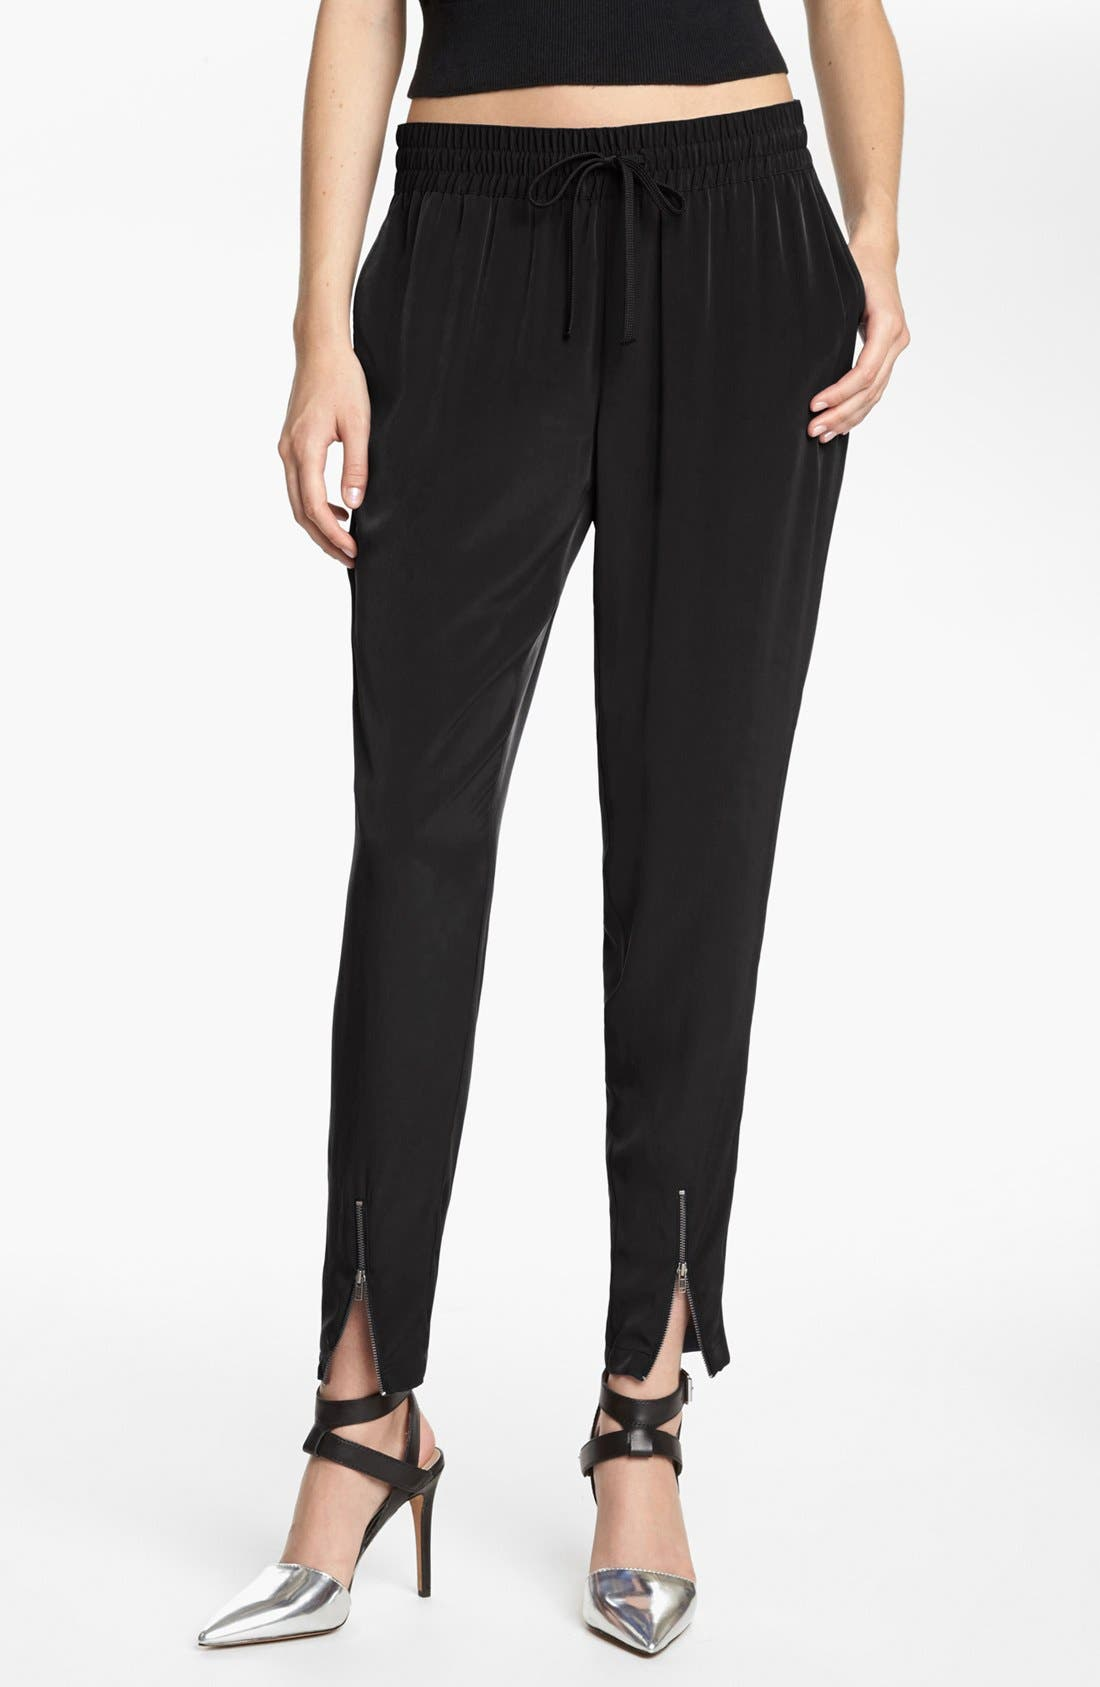 LEITH Woven Zip Cuff Track Pants, Main, color, 001